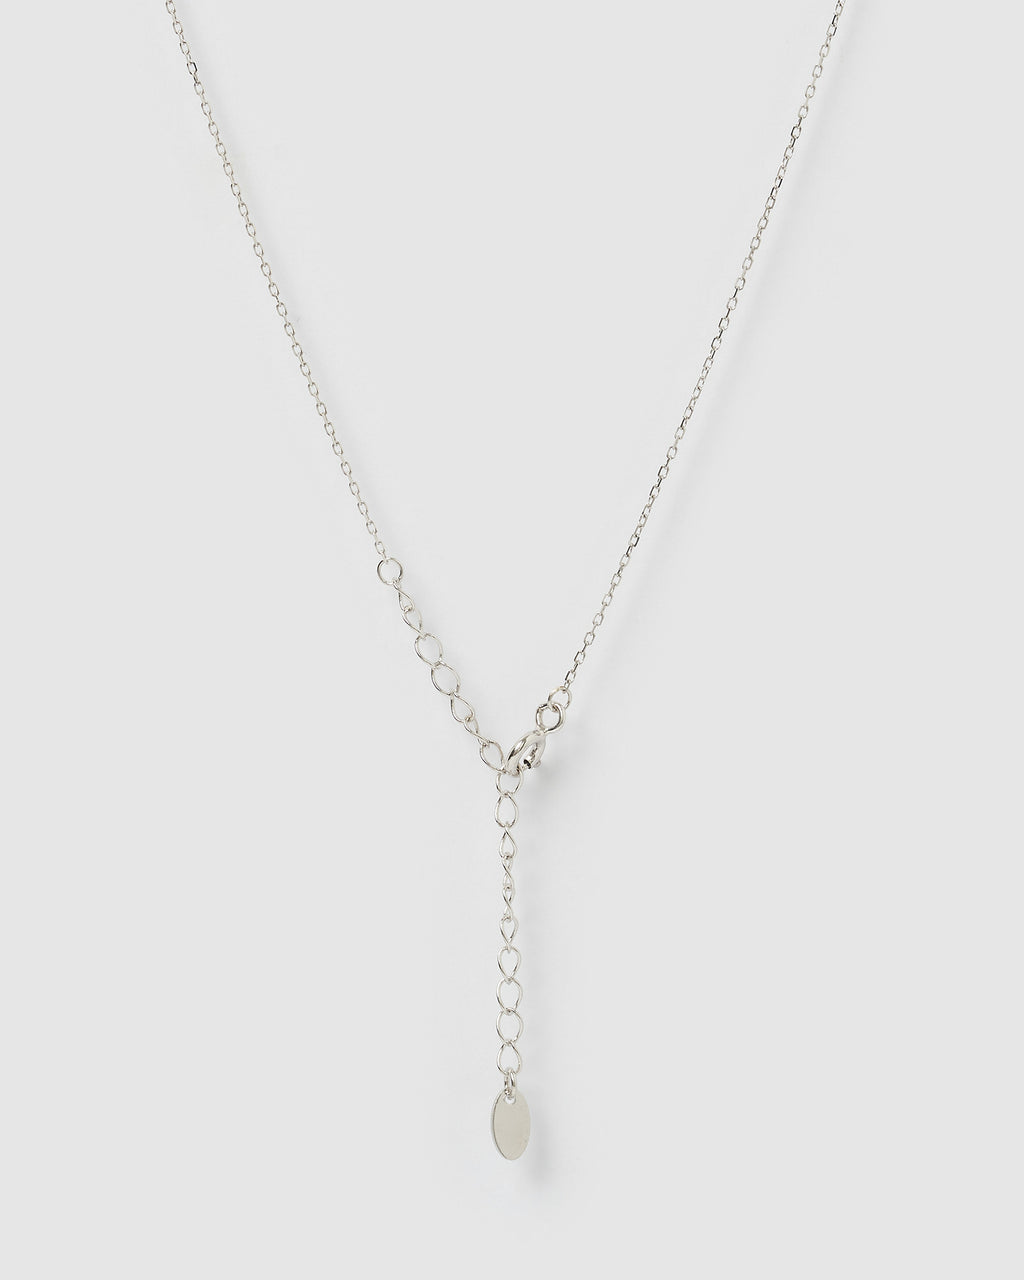 Izoa Delicate Freshwater Pearl Necklace Sterling Silver